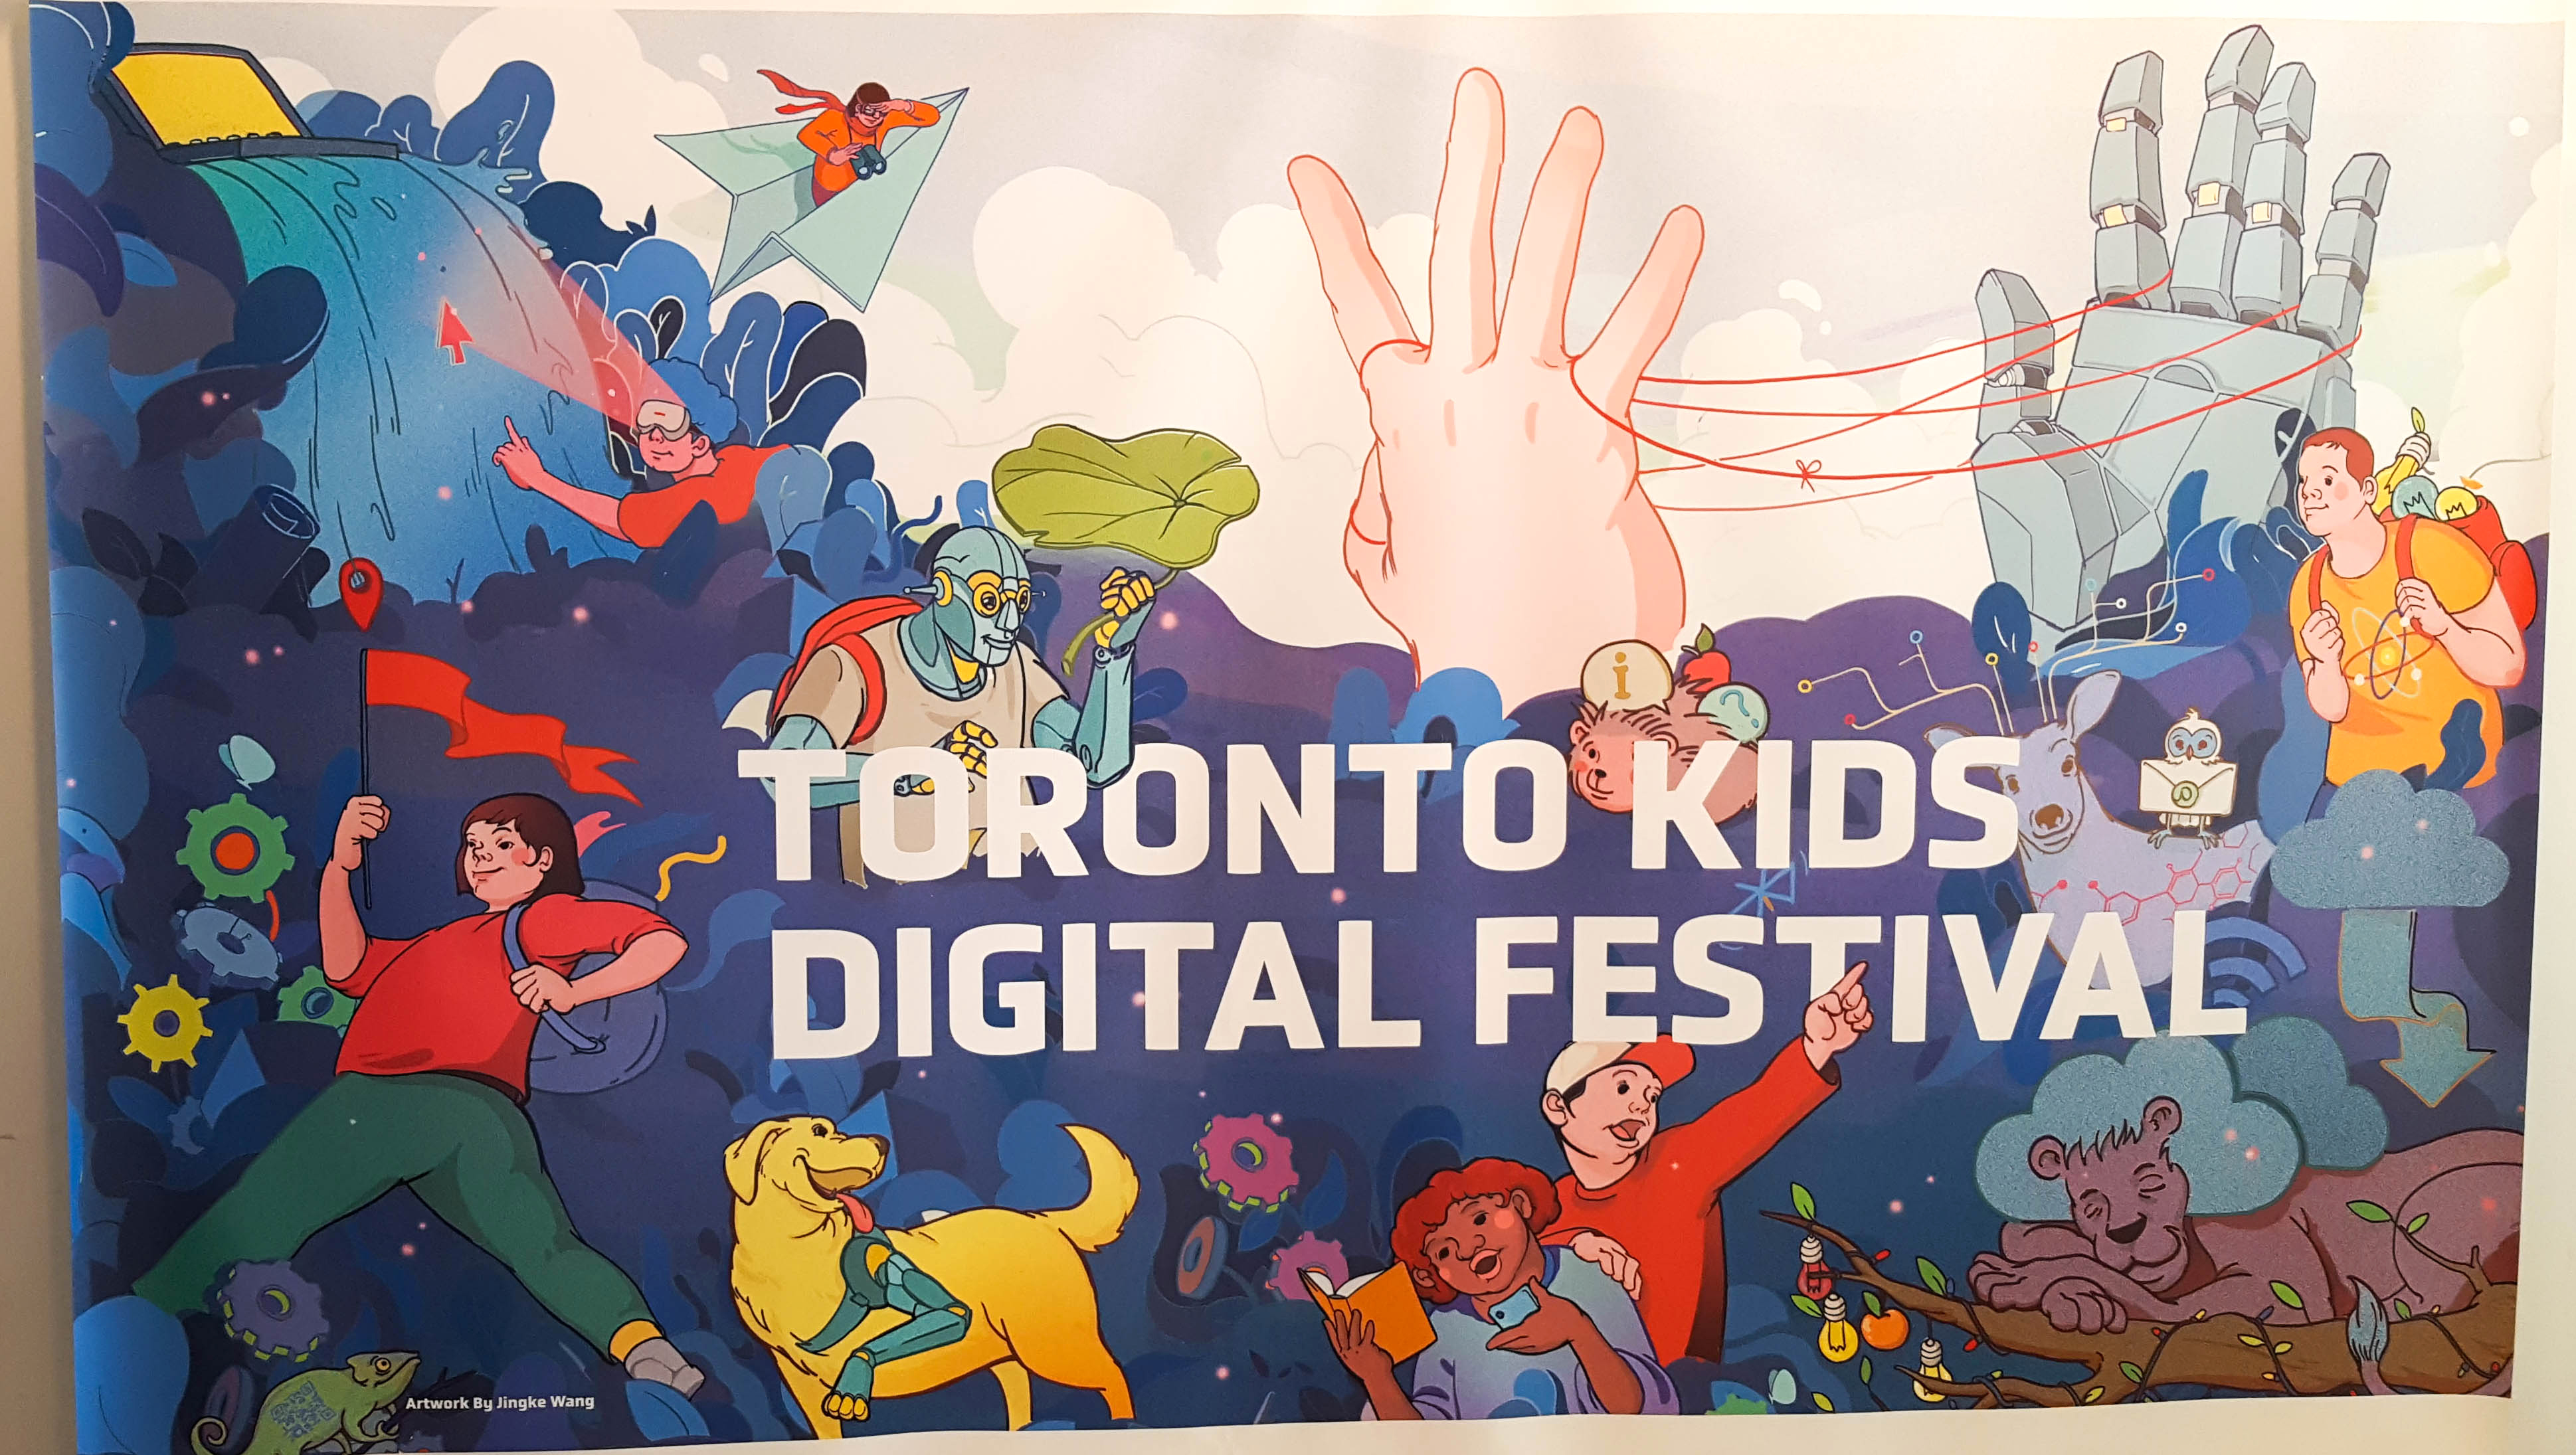 Spacebox at the Toronto Kids Digital Festival